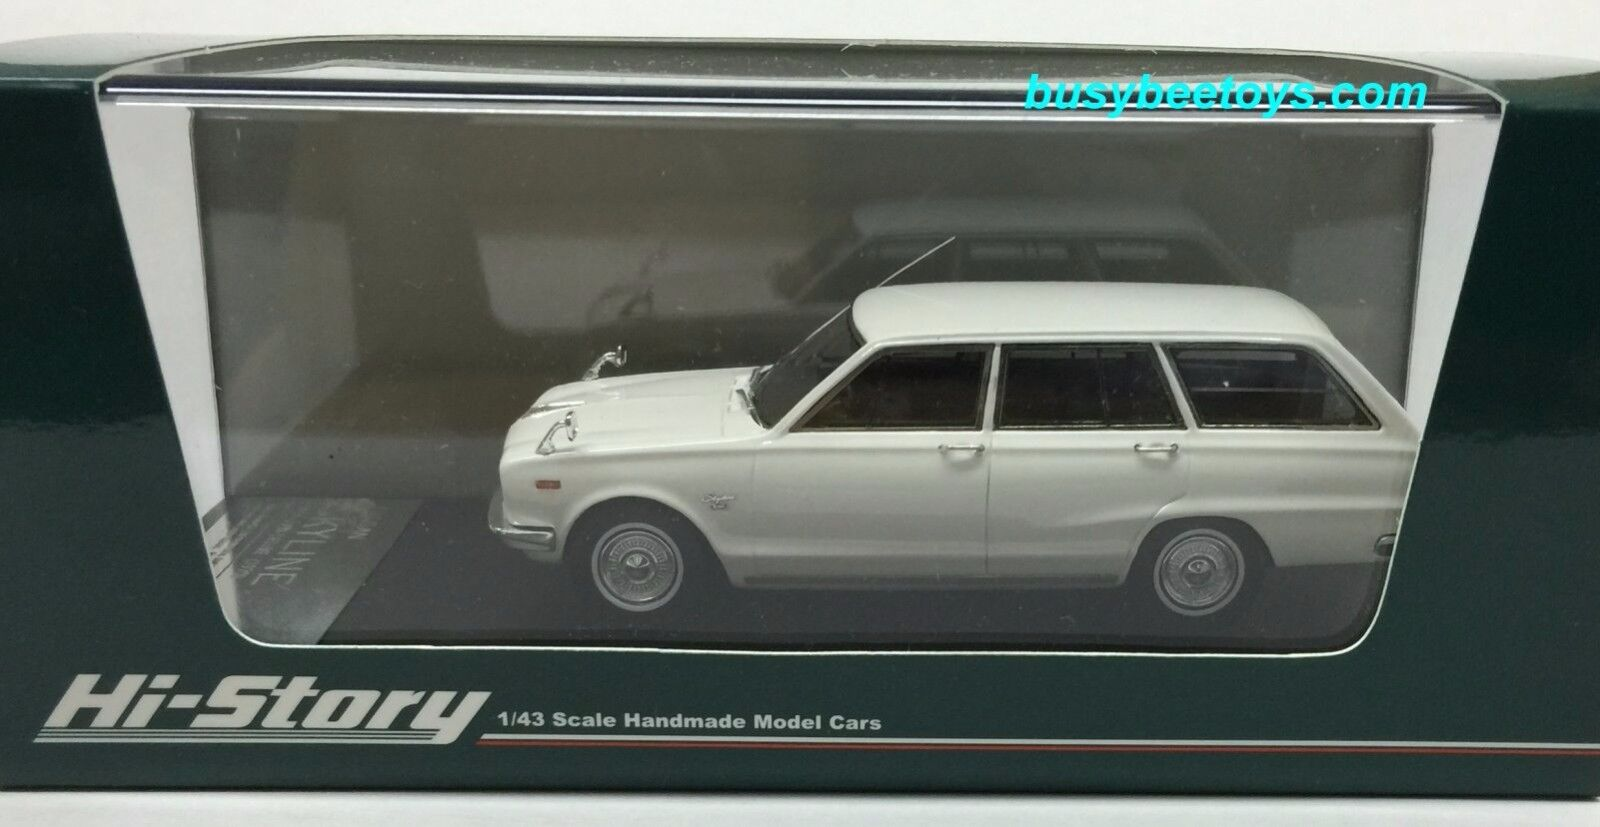 1 43 HI STORY HS123WH 1970 NISSAN SKYLINE 1800 VAN DELUXE WAGON scale model car